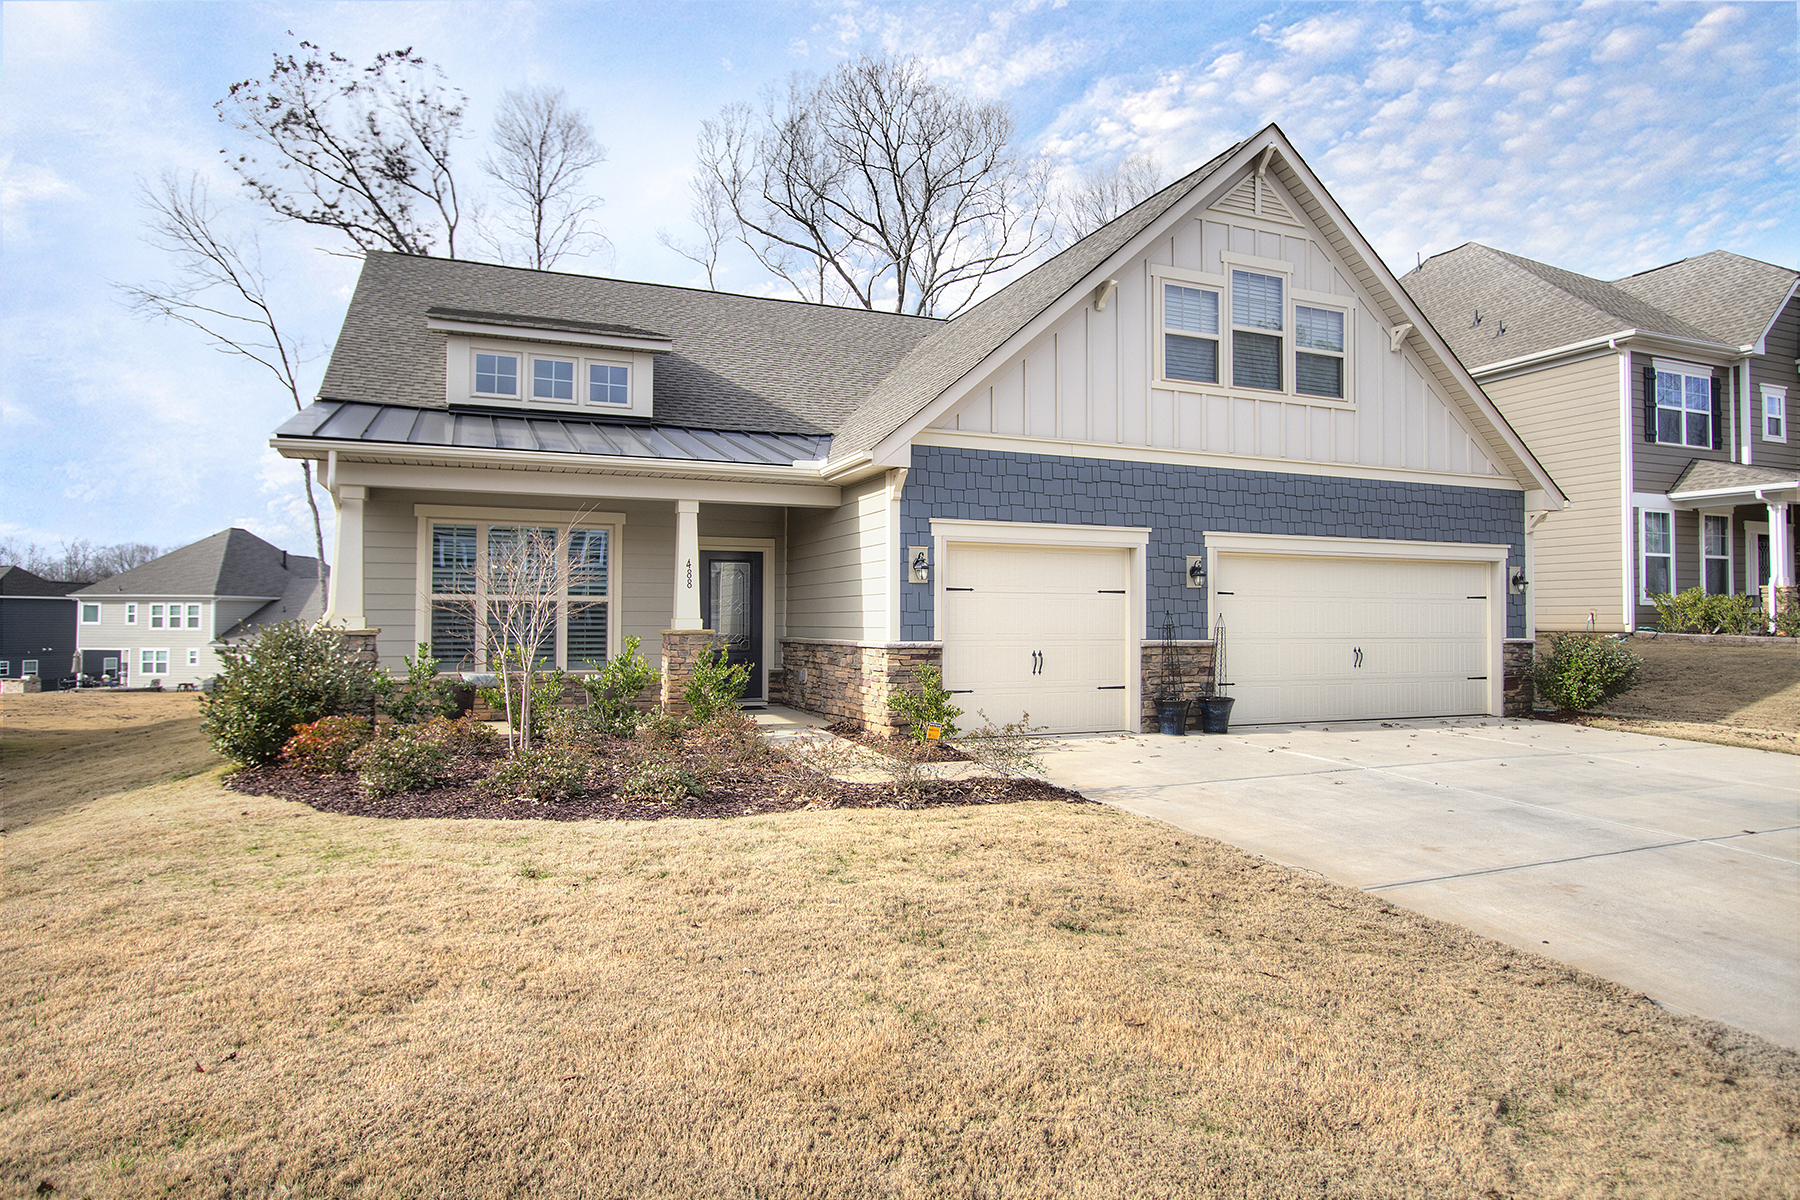 Single Family Home for Sale at THE RETREAT AT RAYFIELD 488 Moses Dr 325, Indian Land, South Carolina 29707 United States